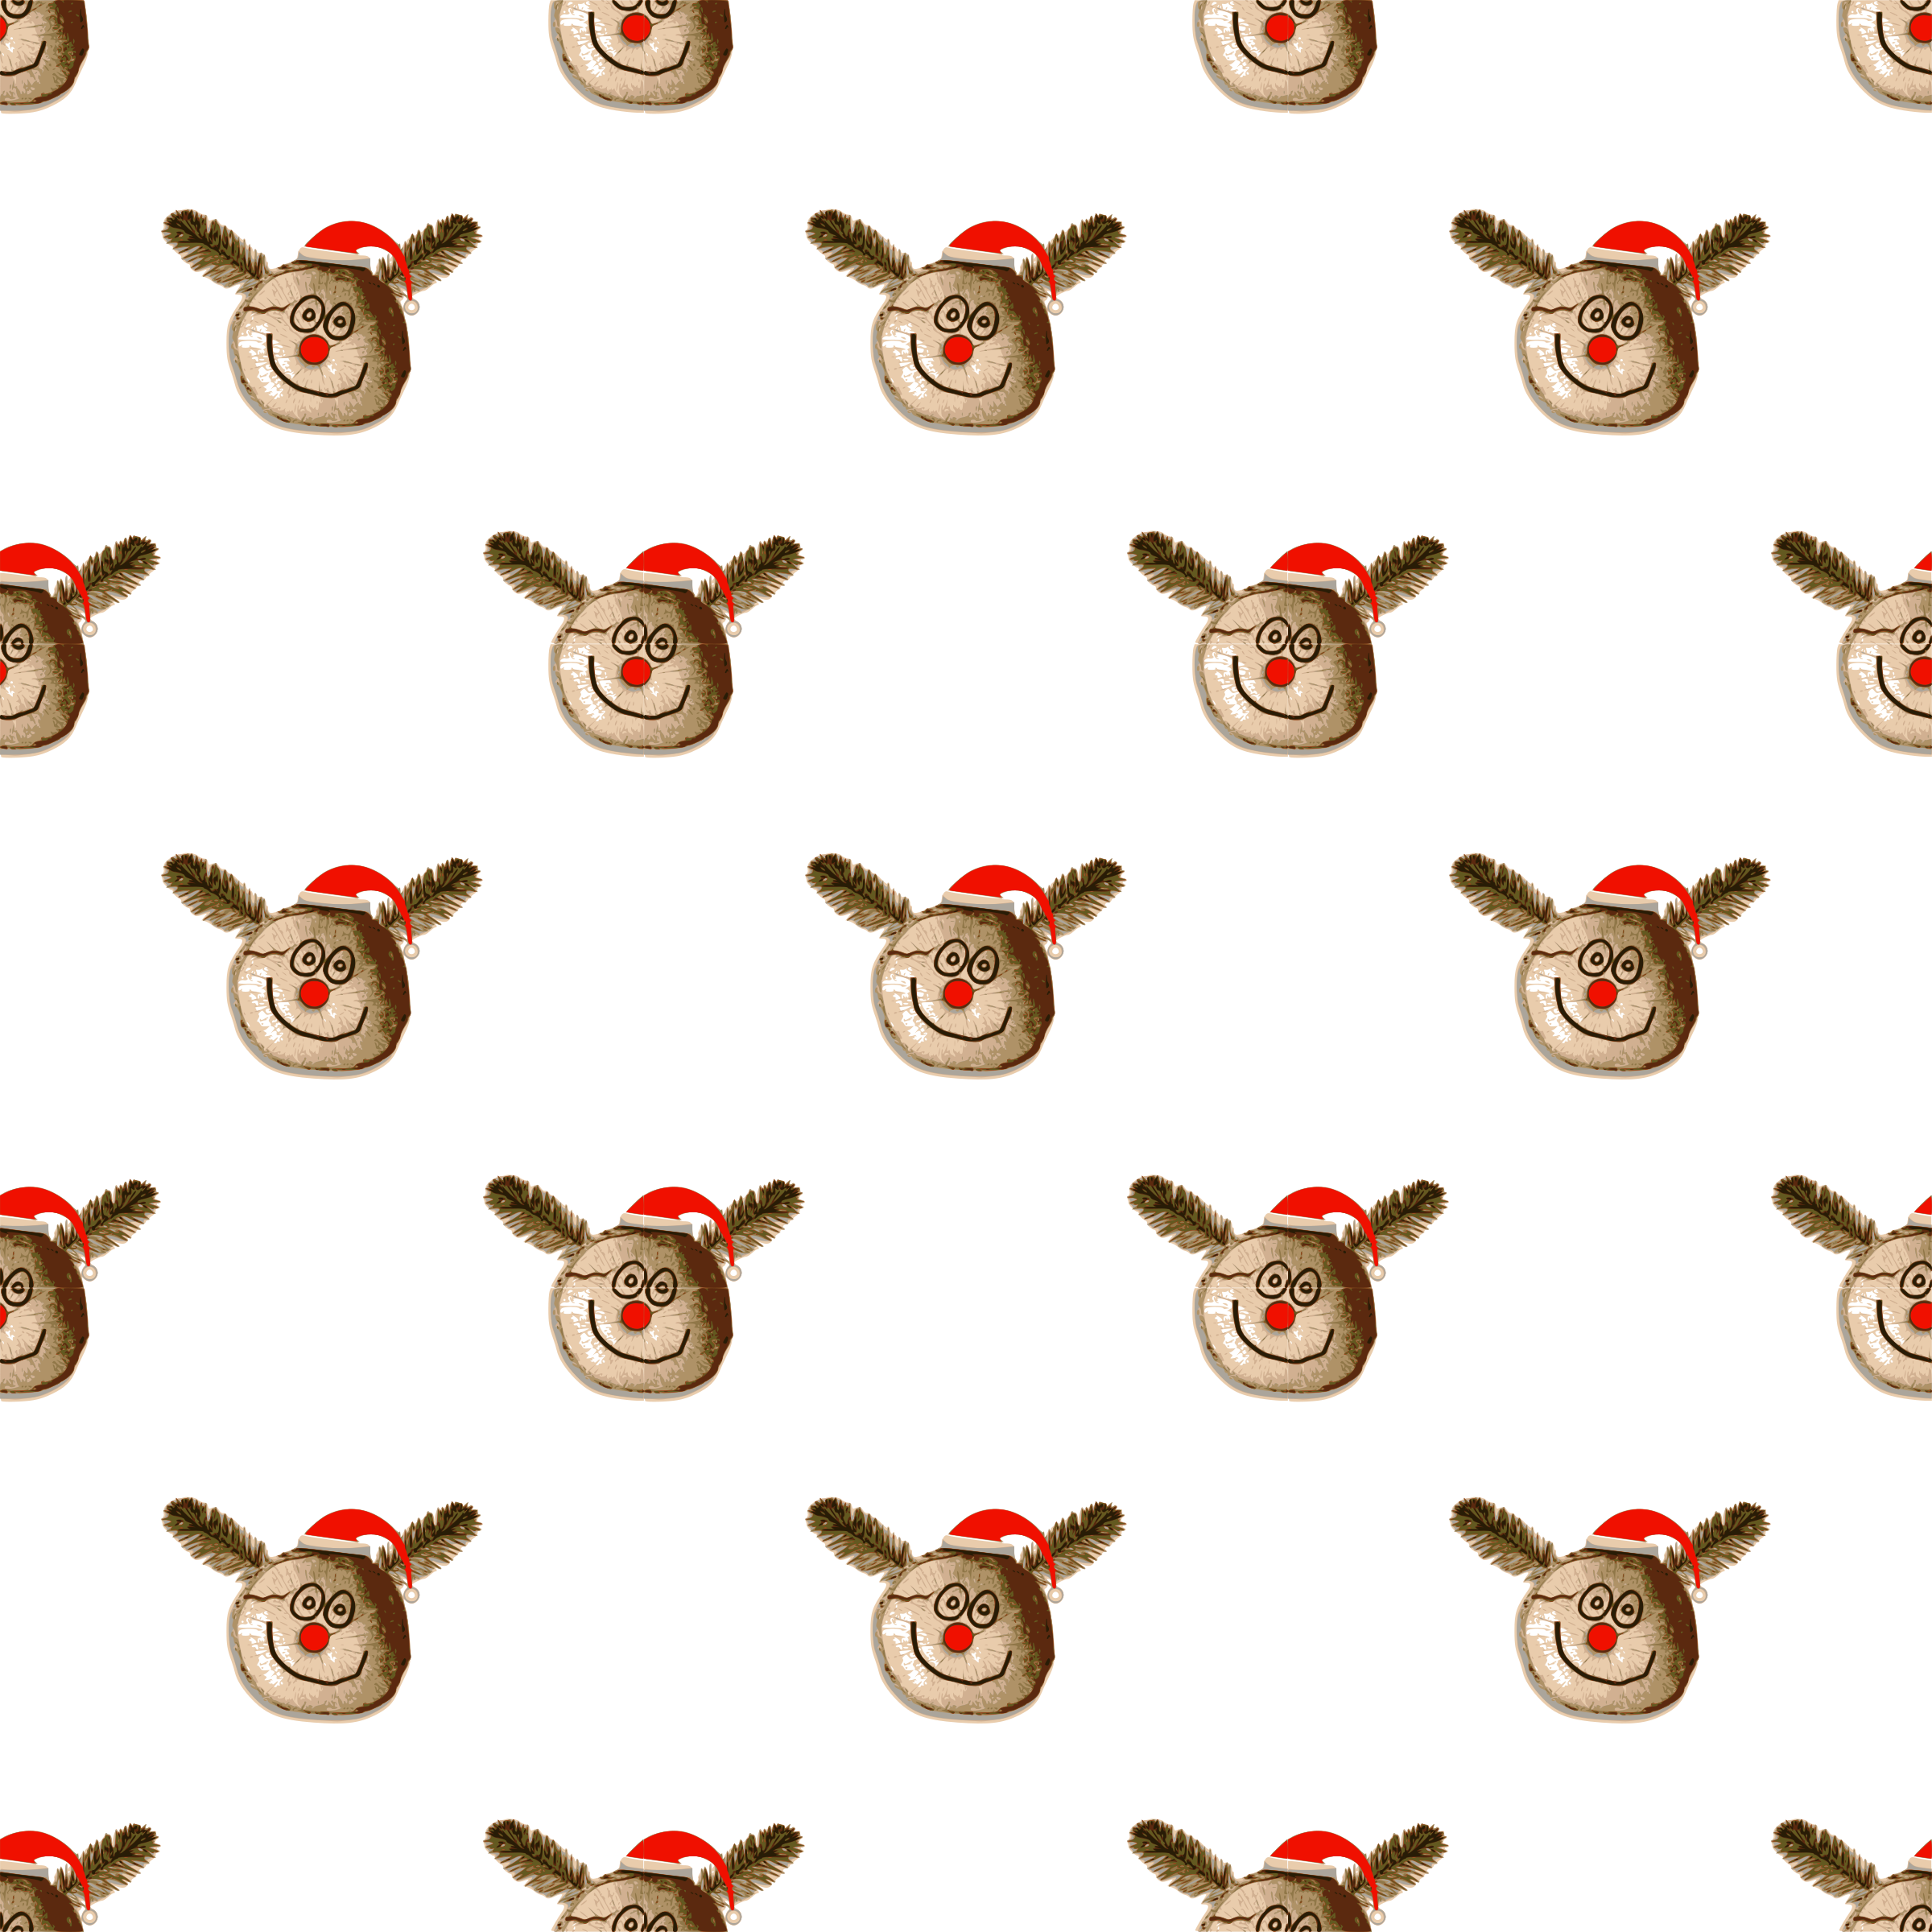 Christmas ornament seamless pattern. Nose clipart illustration